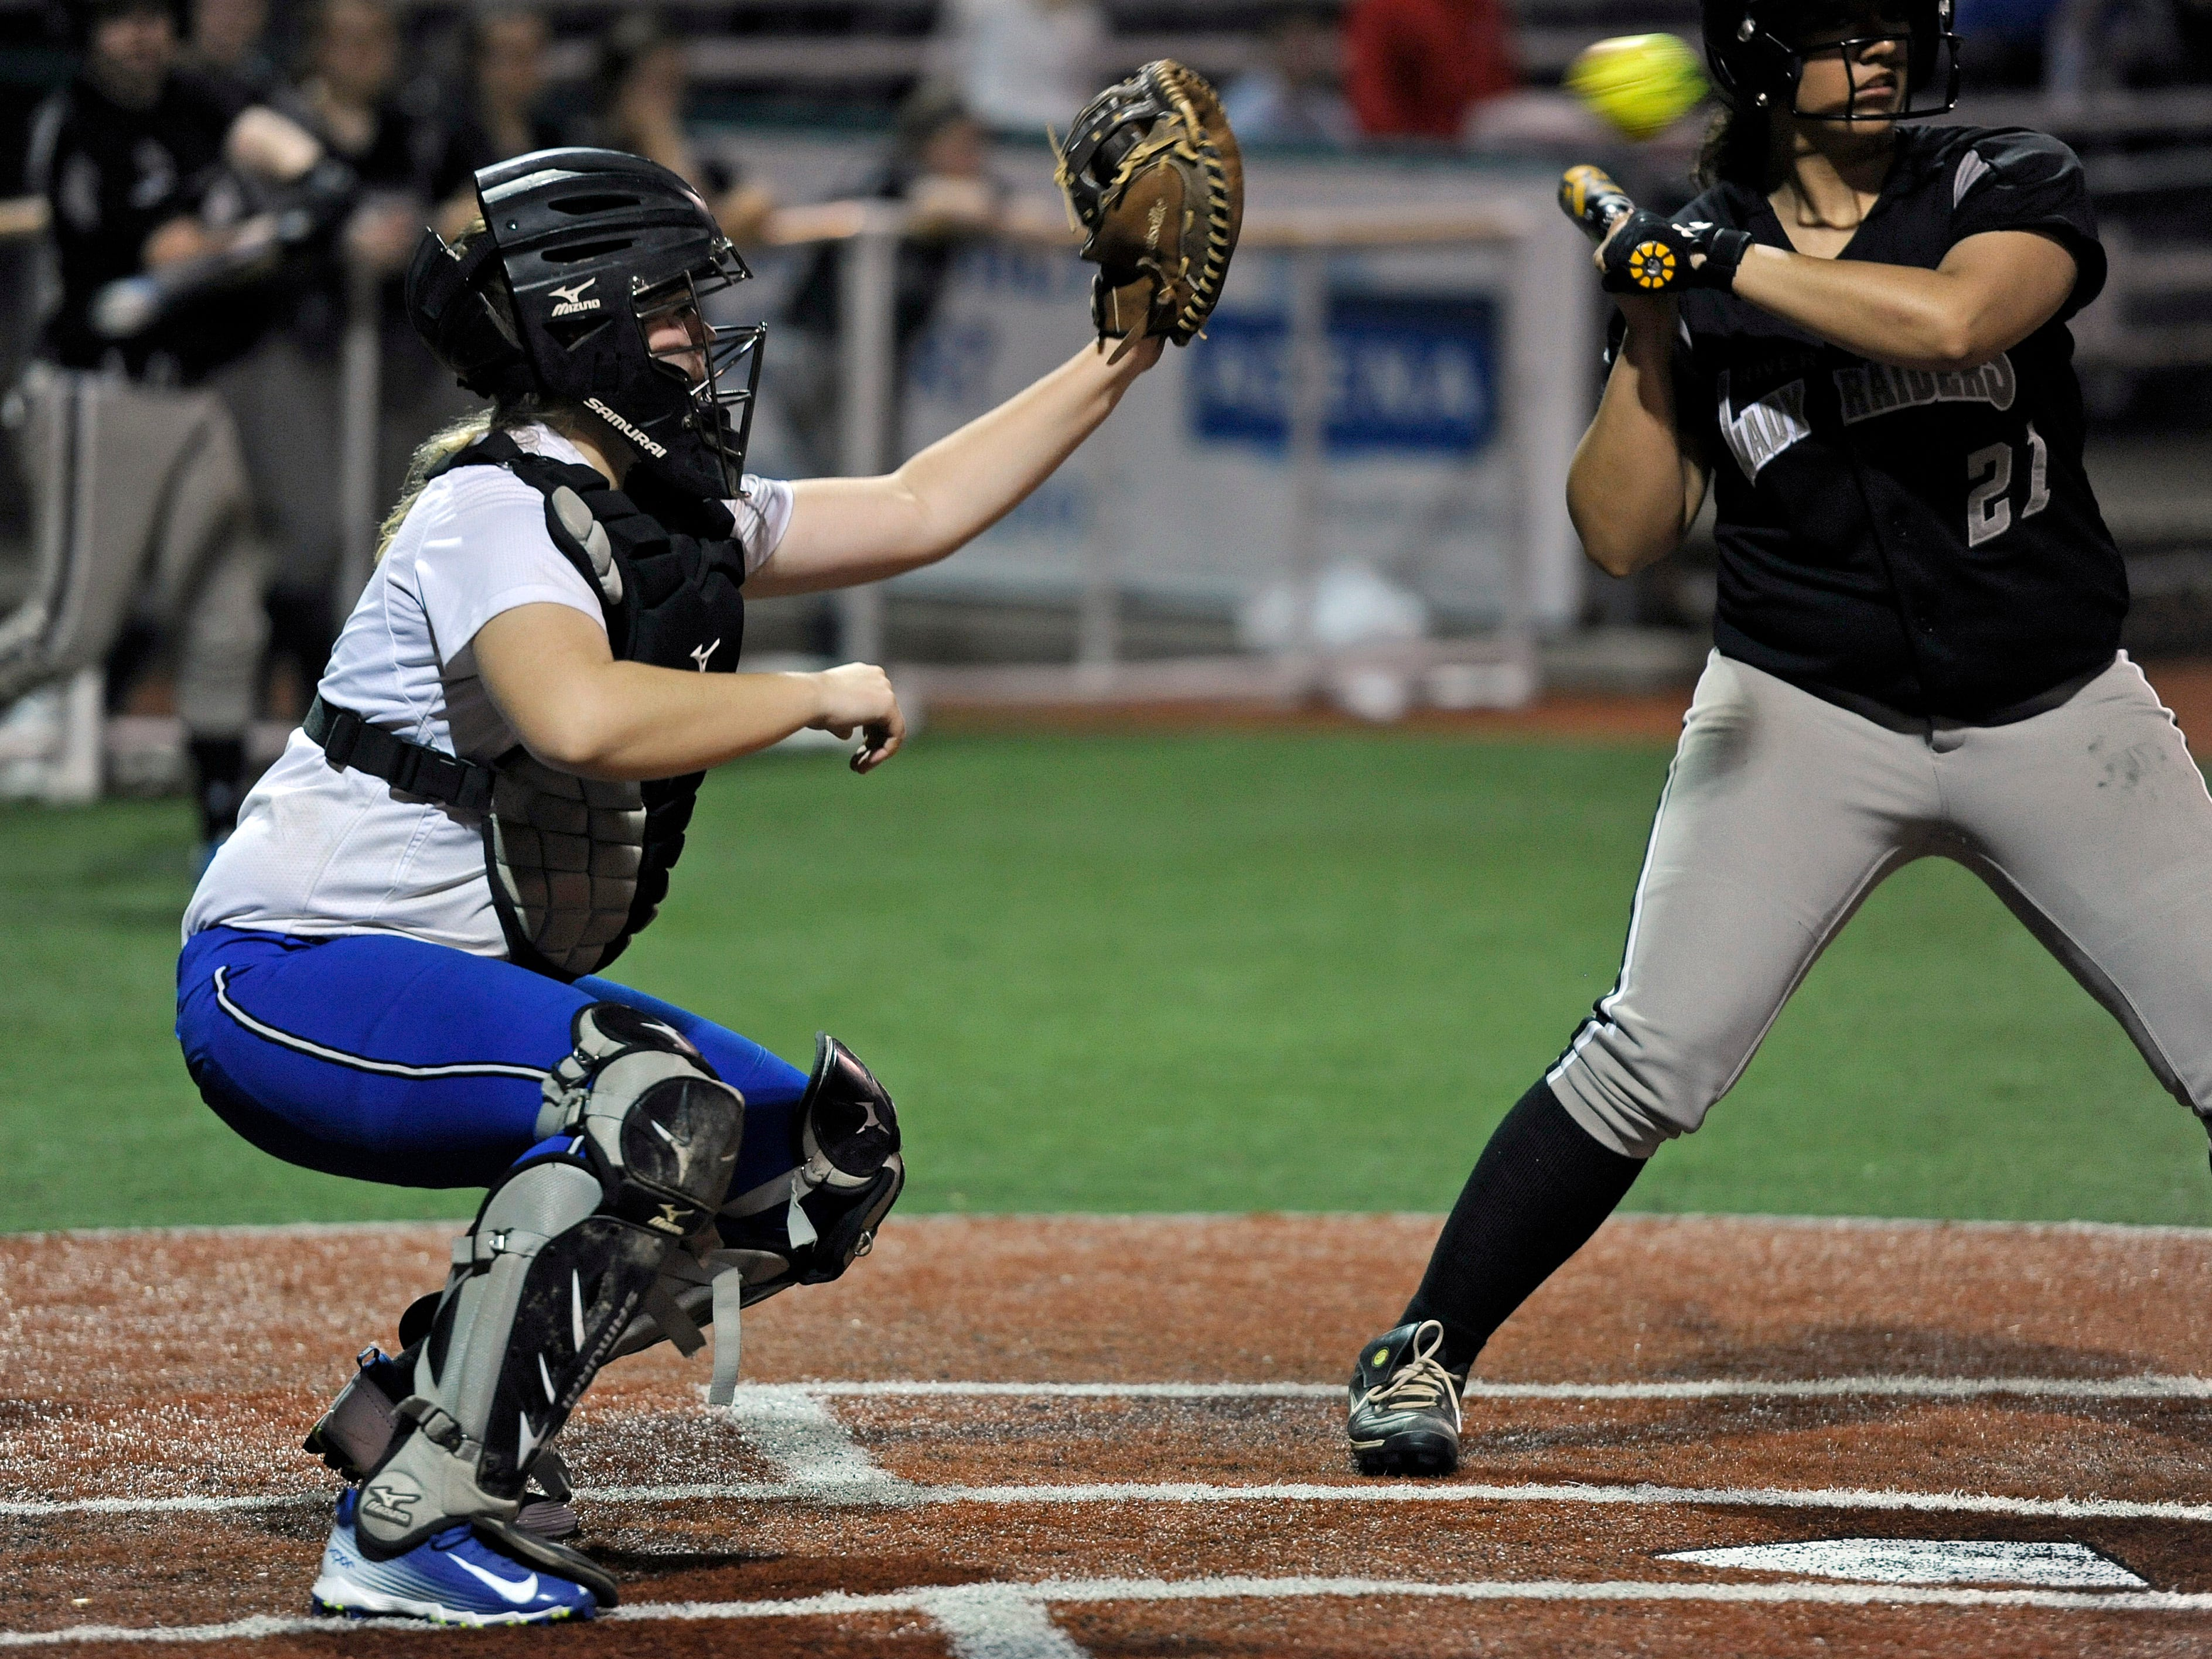 Chillicothe's catcher, junior Haylee Jo Large, goes into play next week with a .650 batting average.